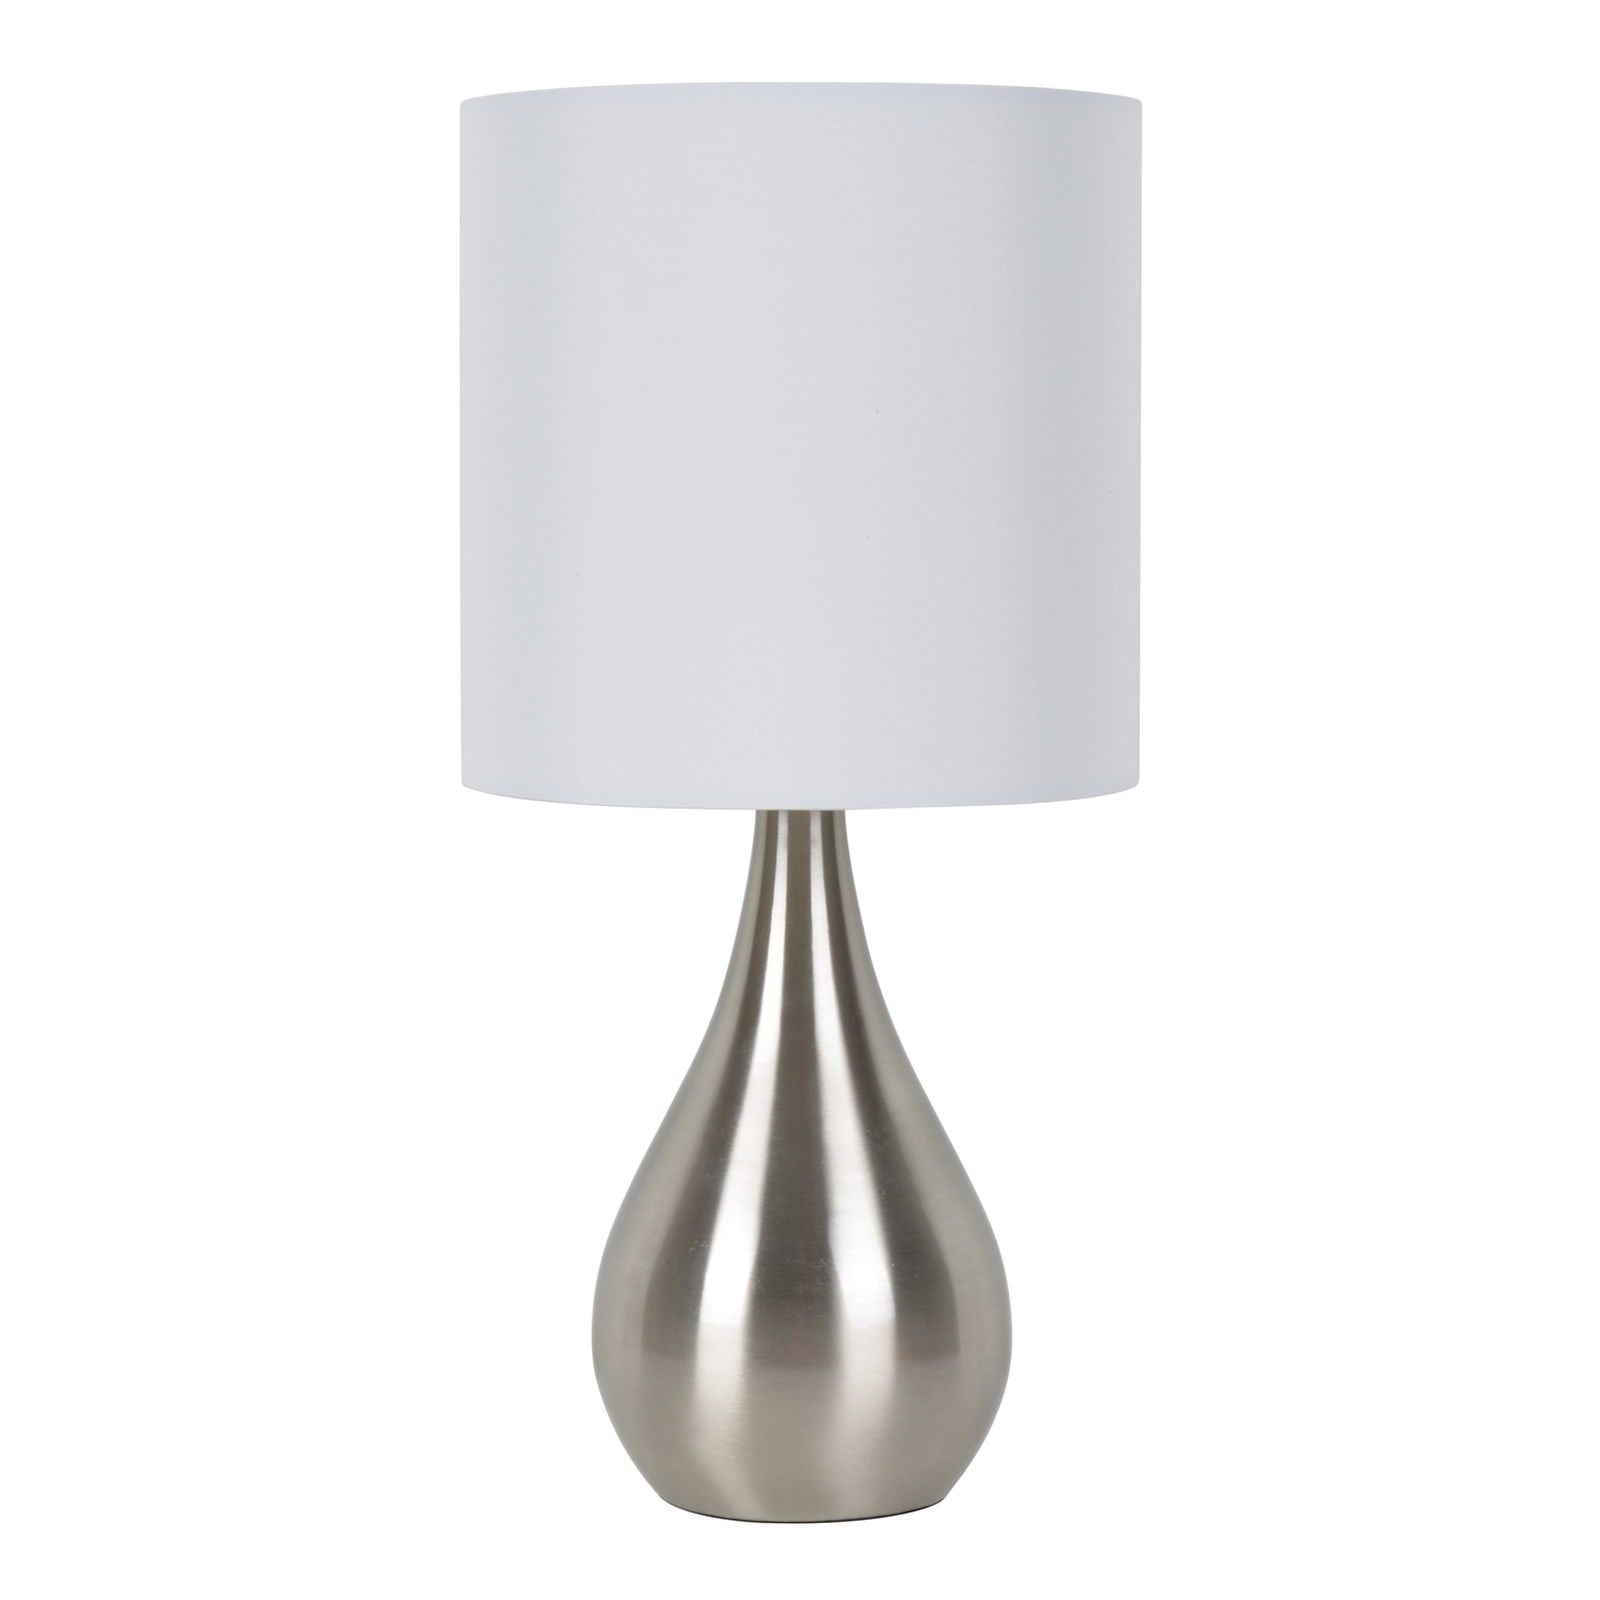 Elegant Essential Home Chrome Accent Lamp With Shade